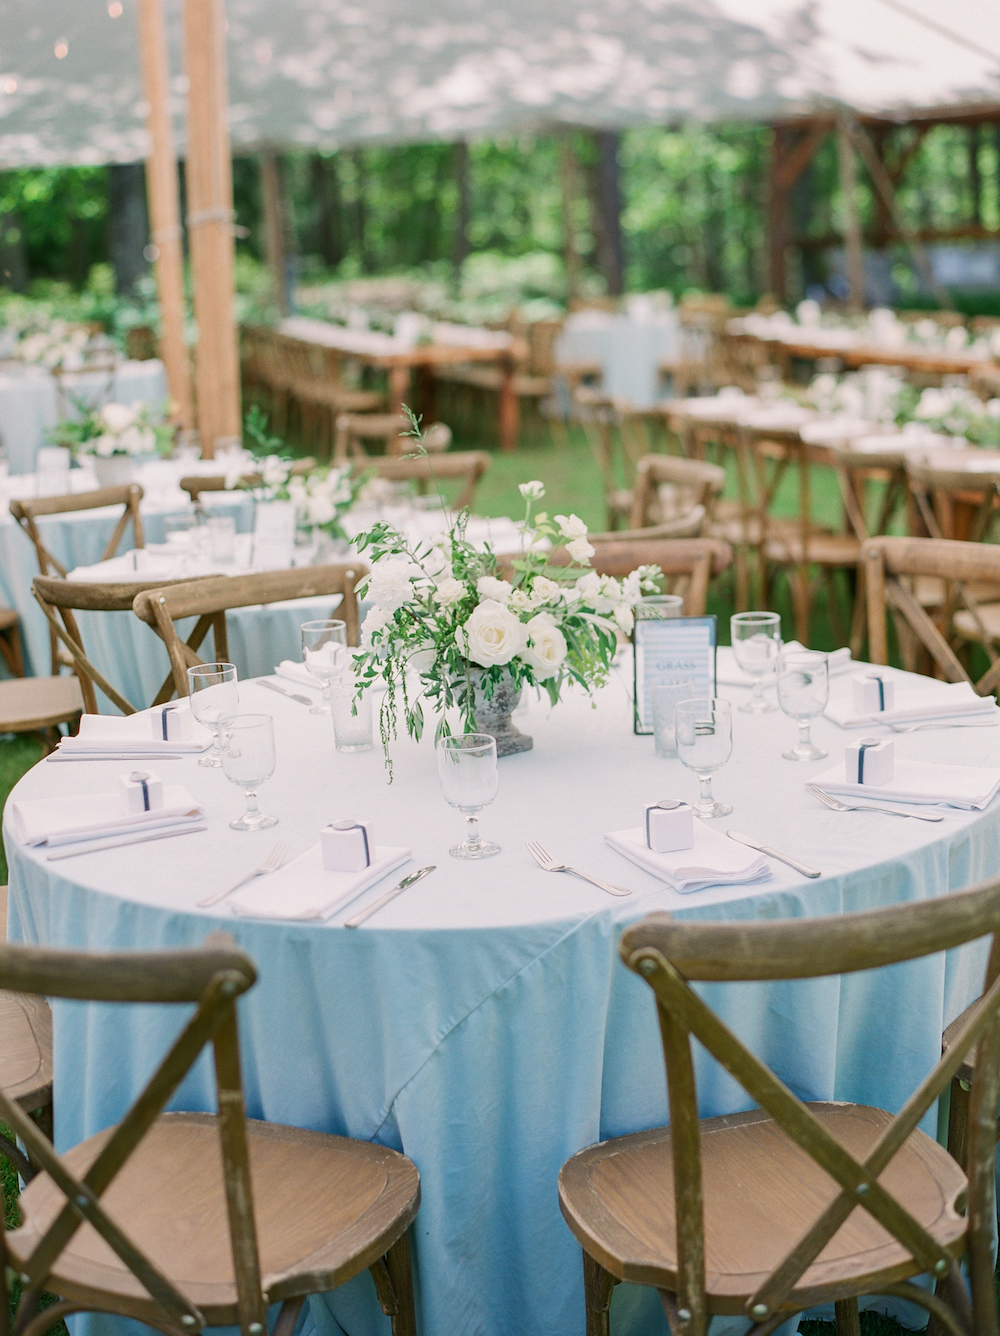 Tables set for a tented wedding in Glen Arbor, Michigan